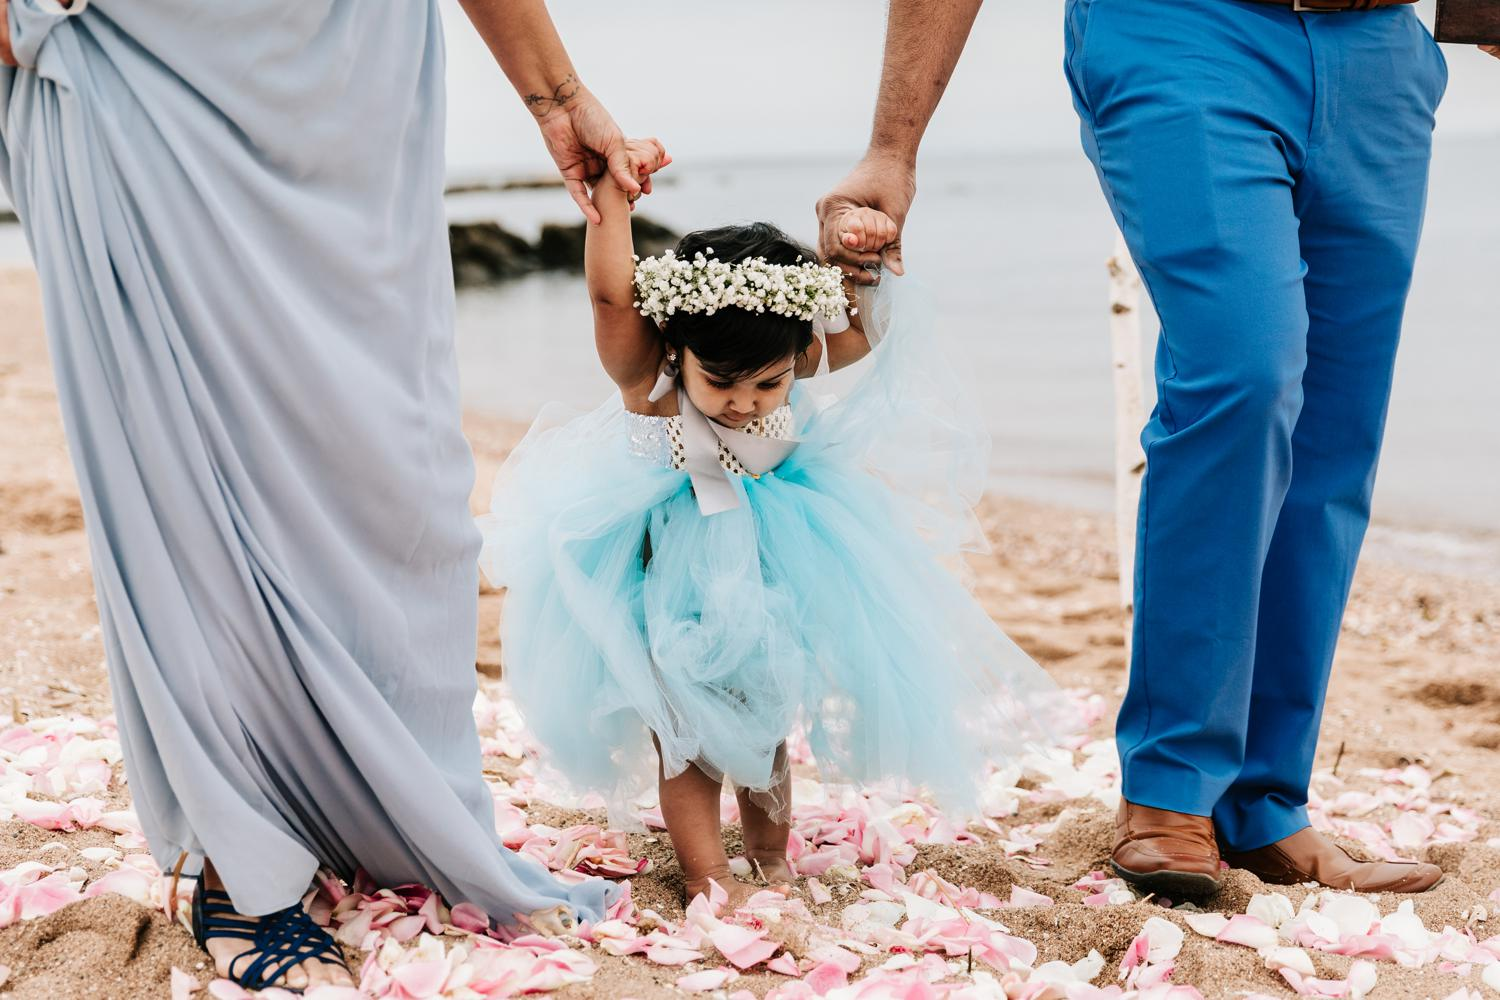 Flower girl baby being walked down aisle